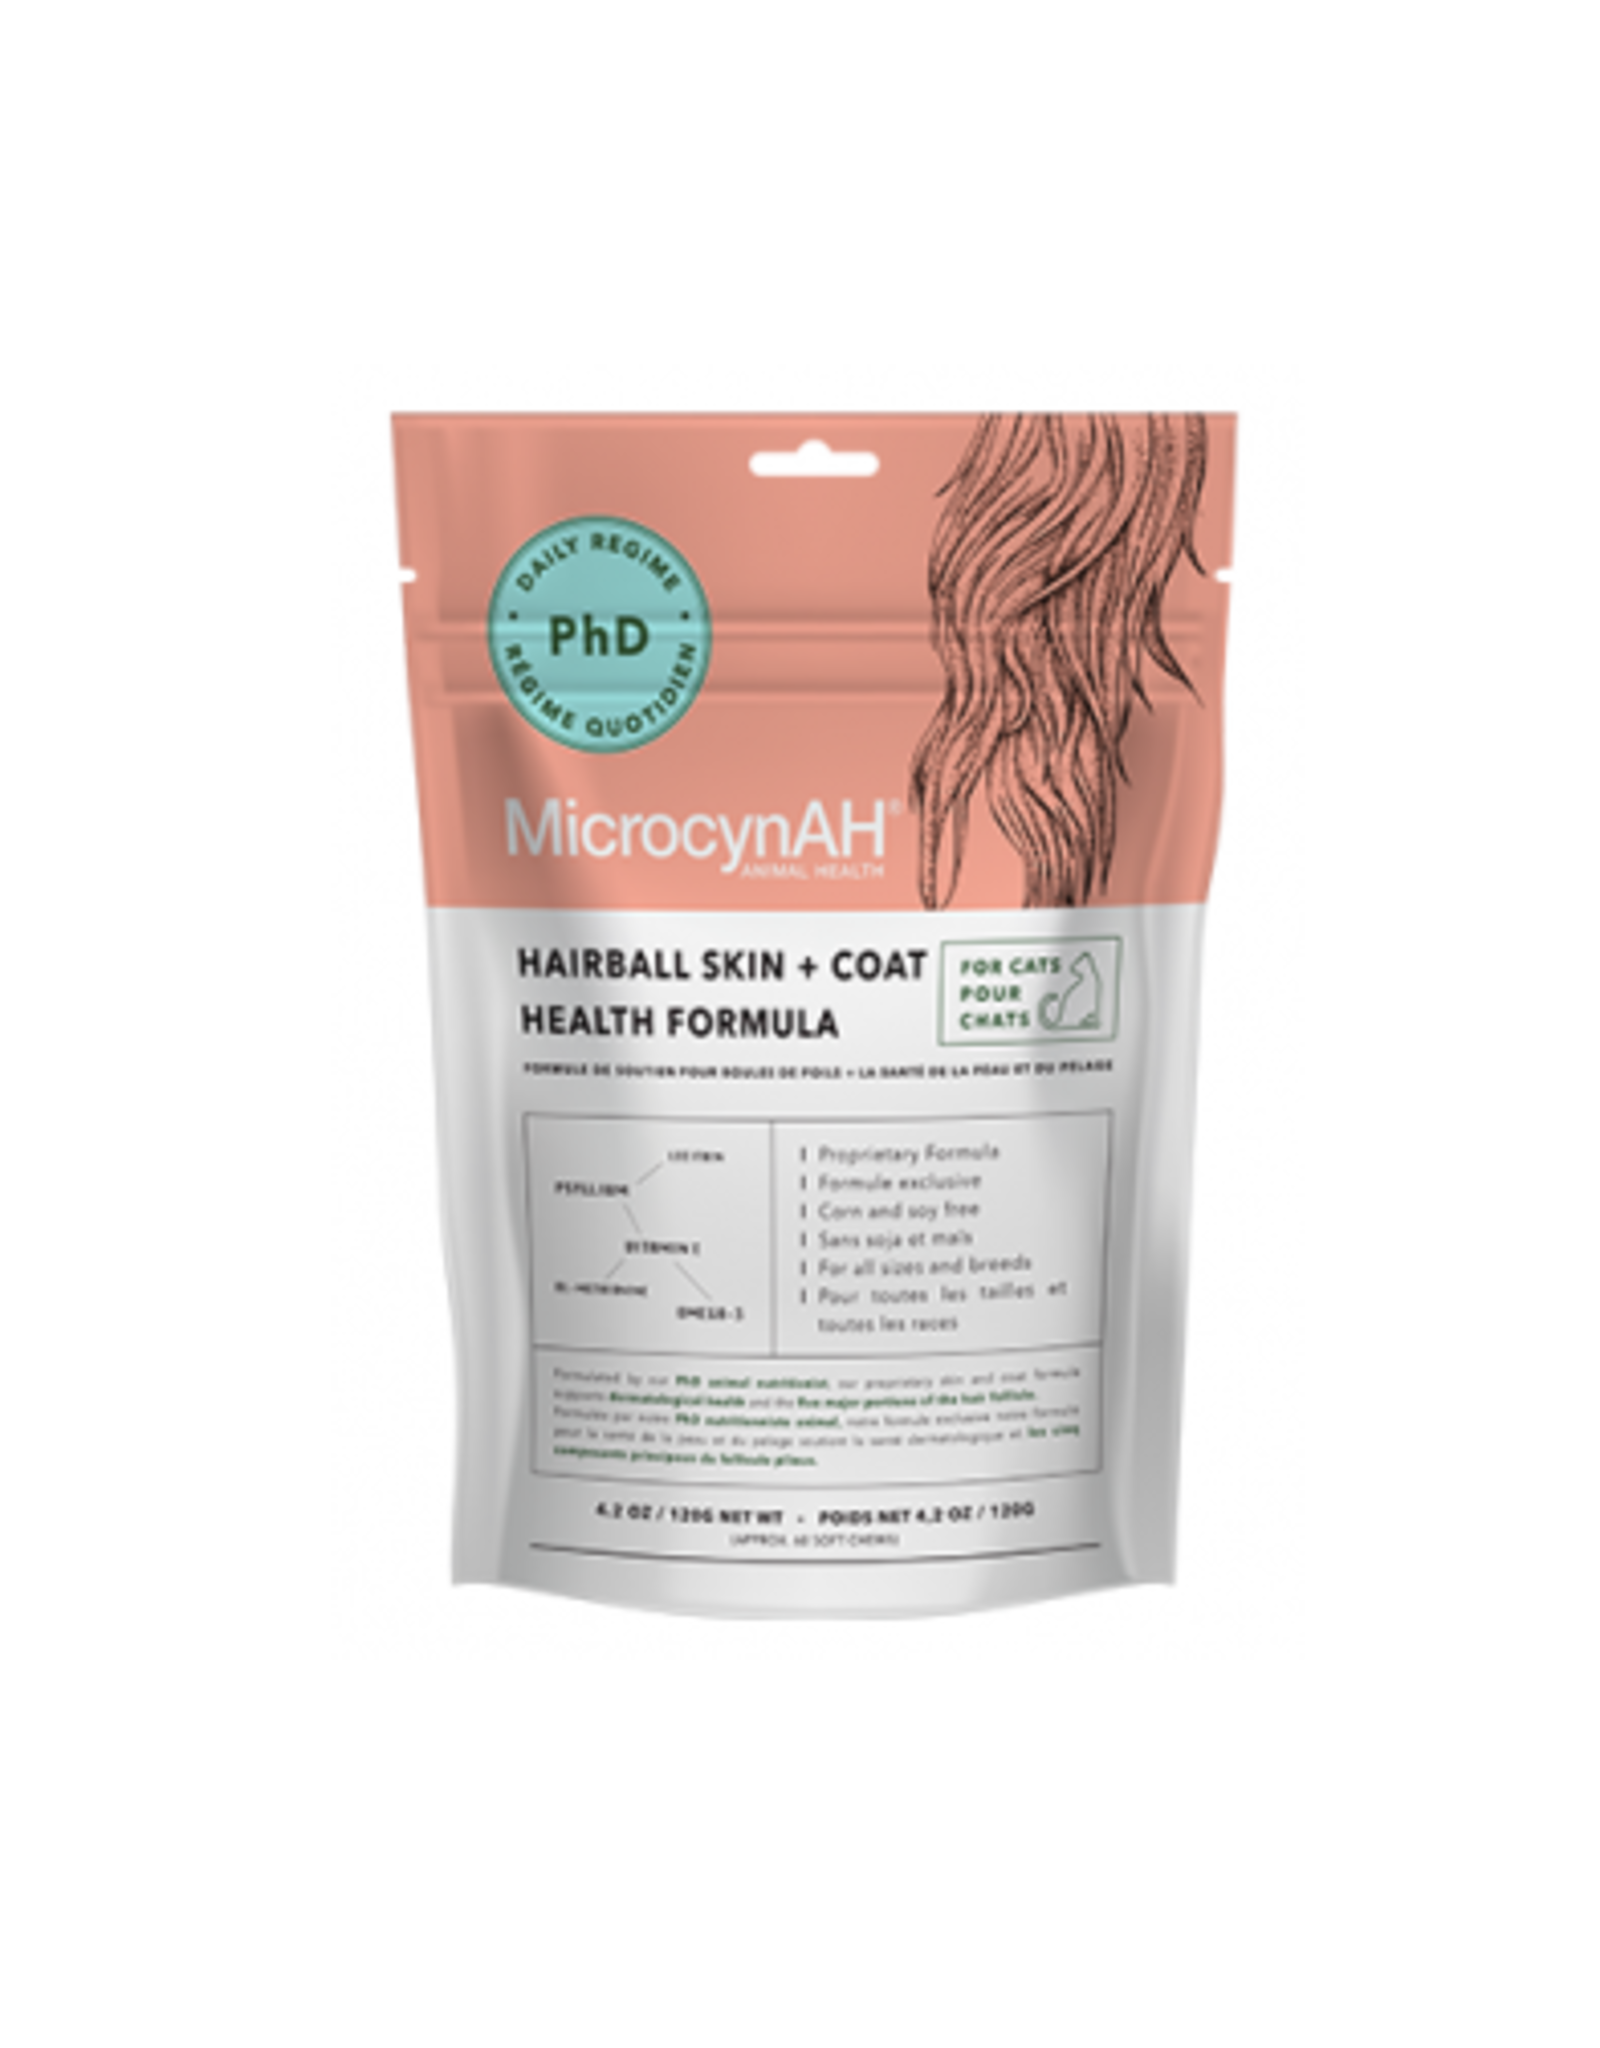 MicrocynAH MicrocynAH Hairball Skin & Coat for Cats 4.2 oz